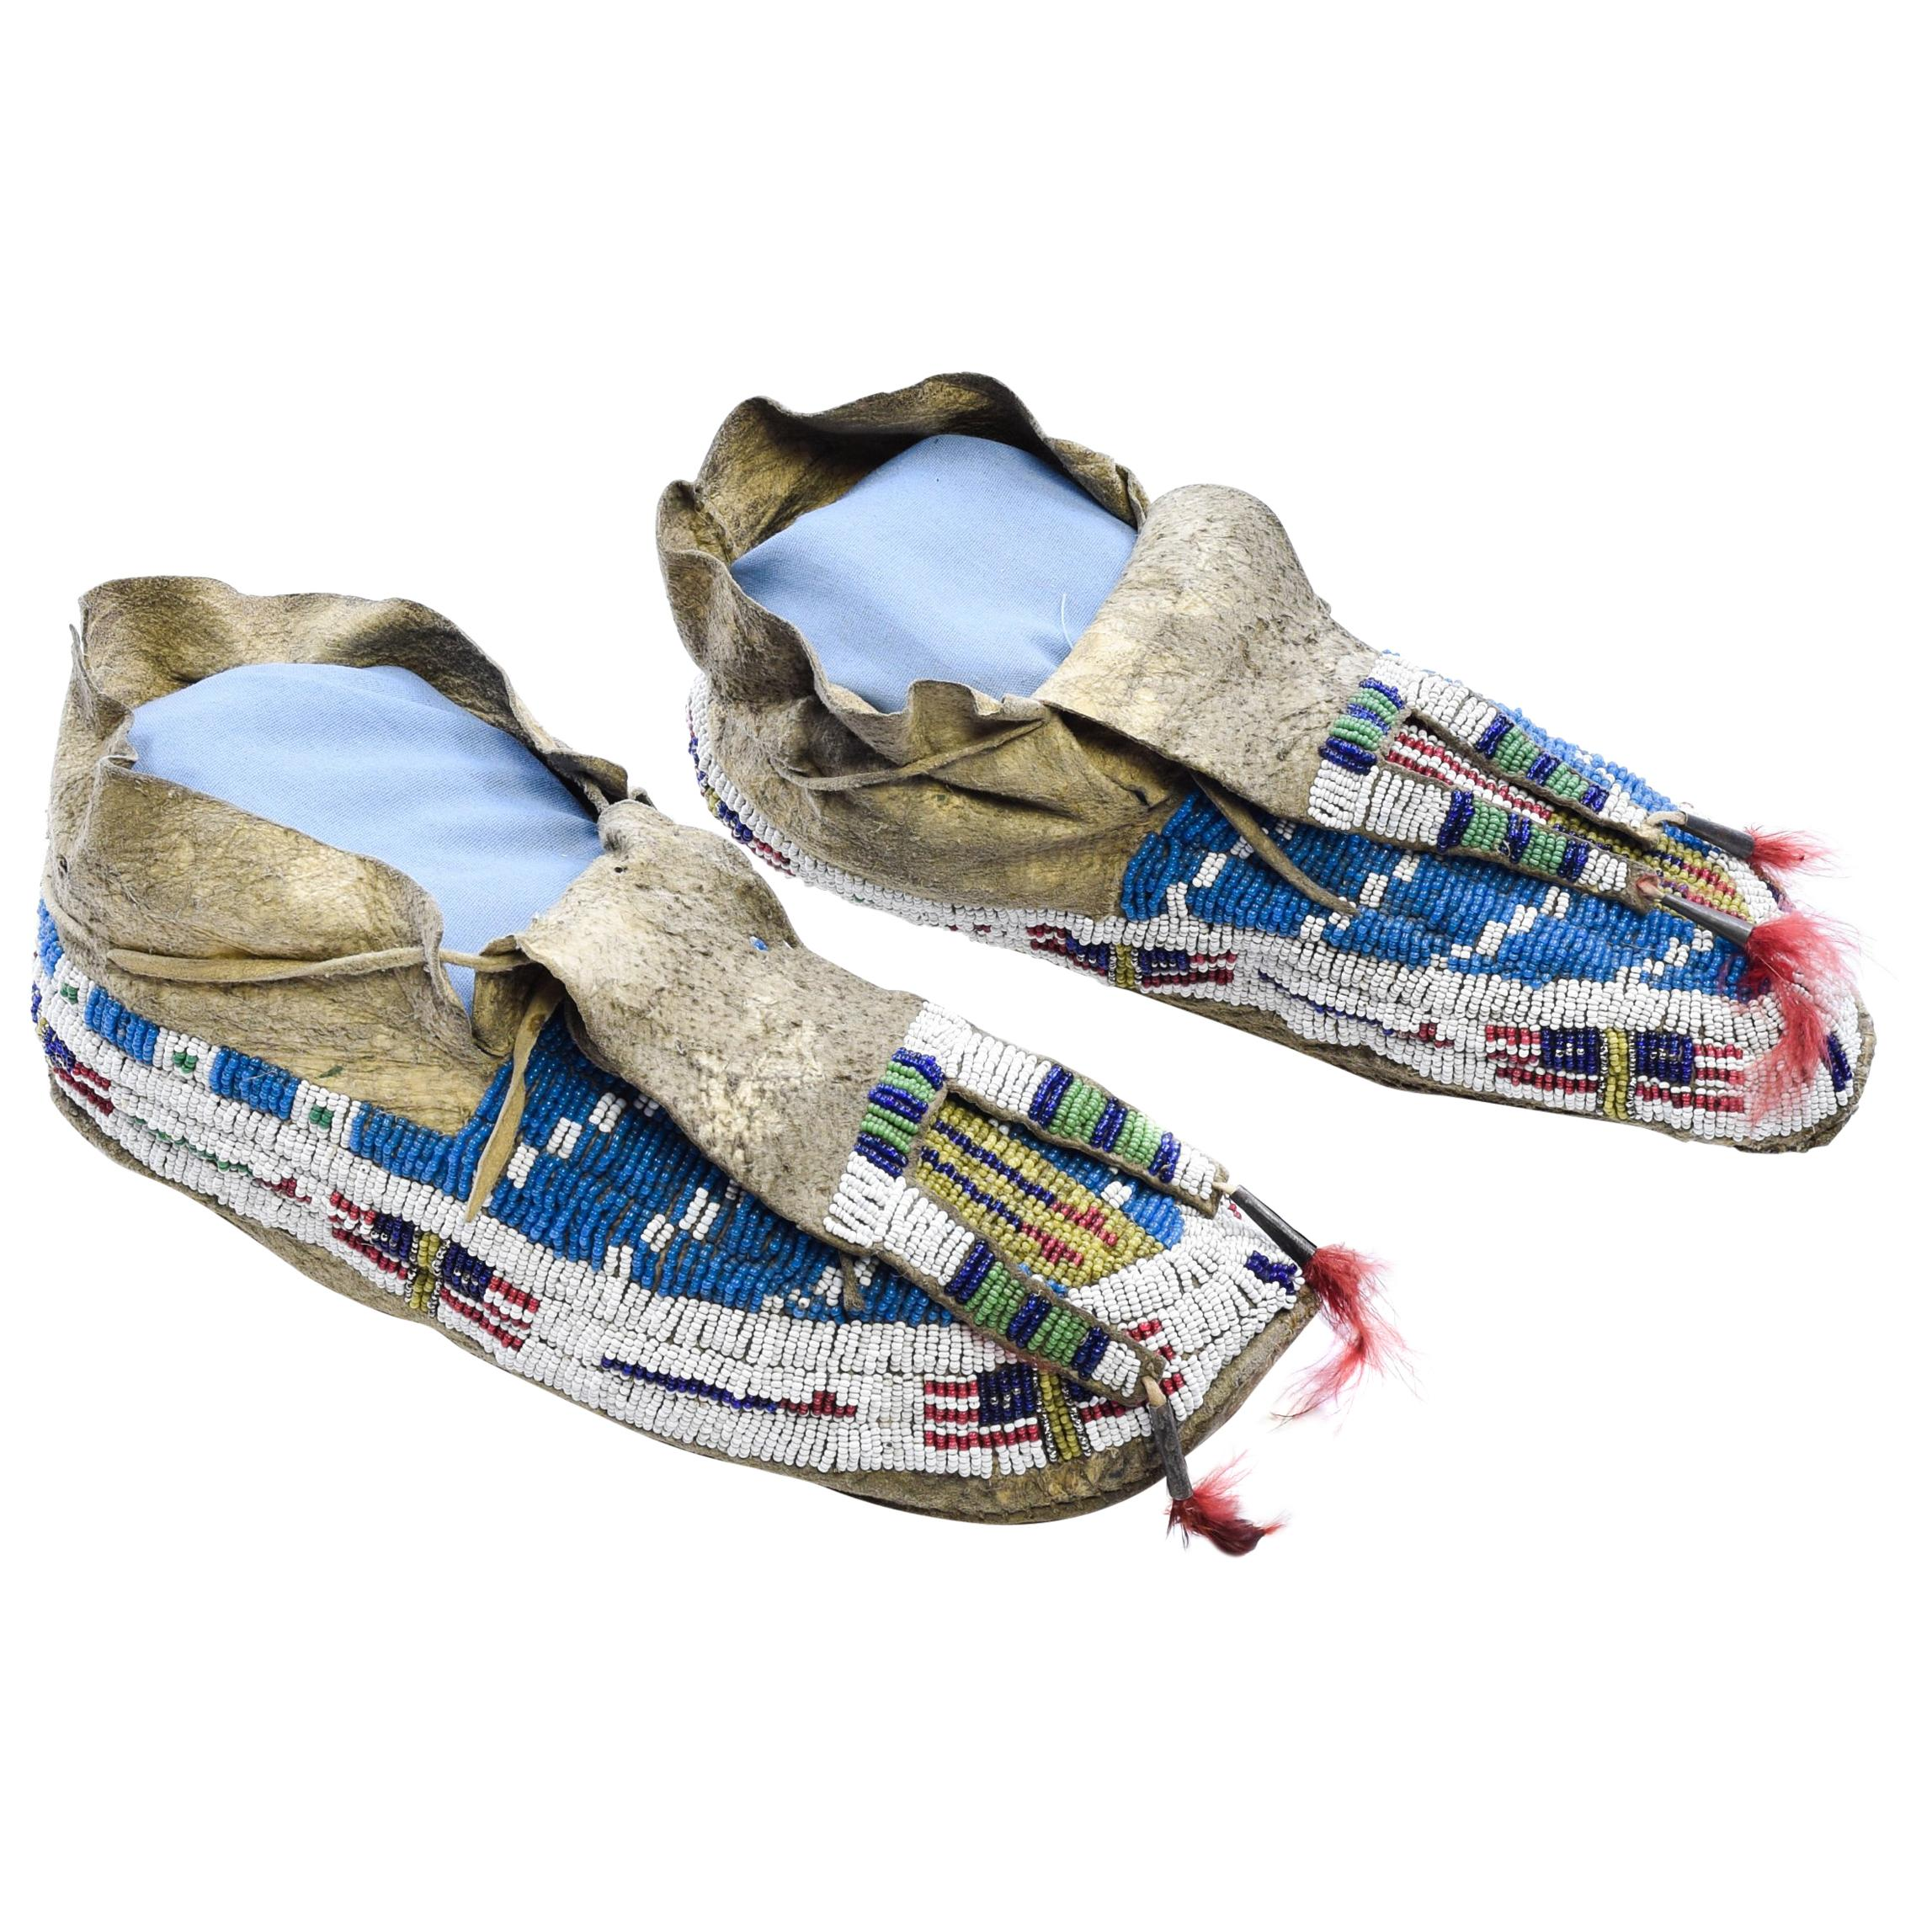 Authentic Native American Beaded Sioux Moccasins